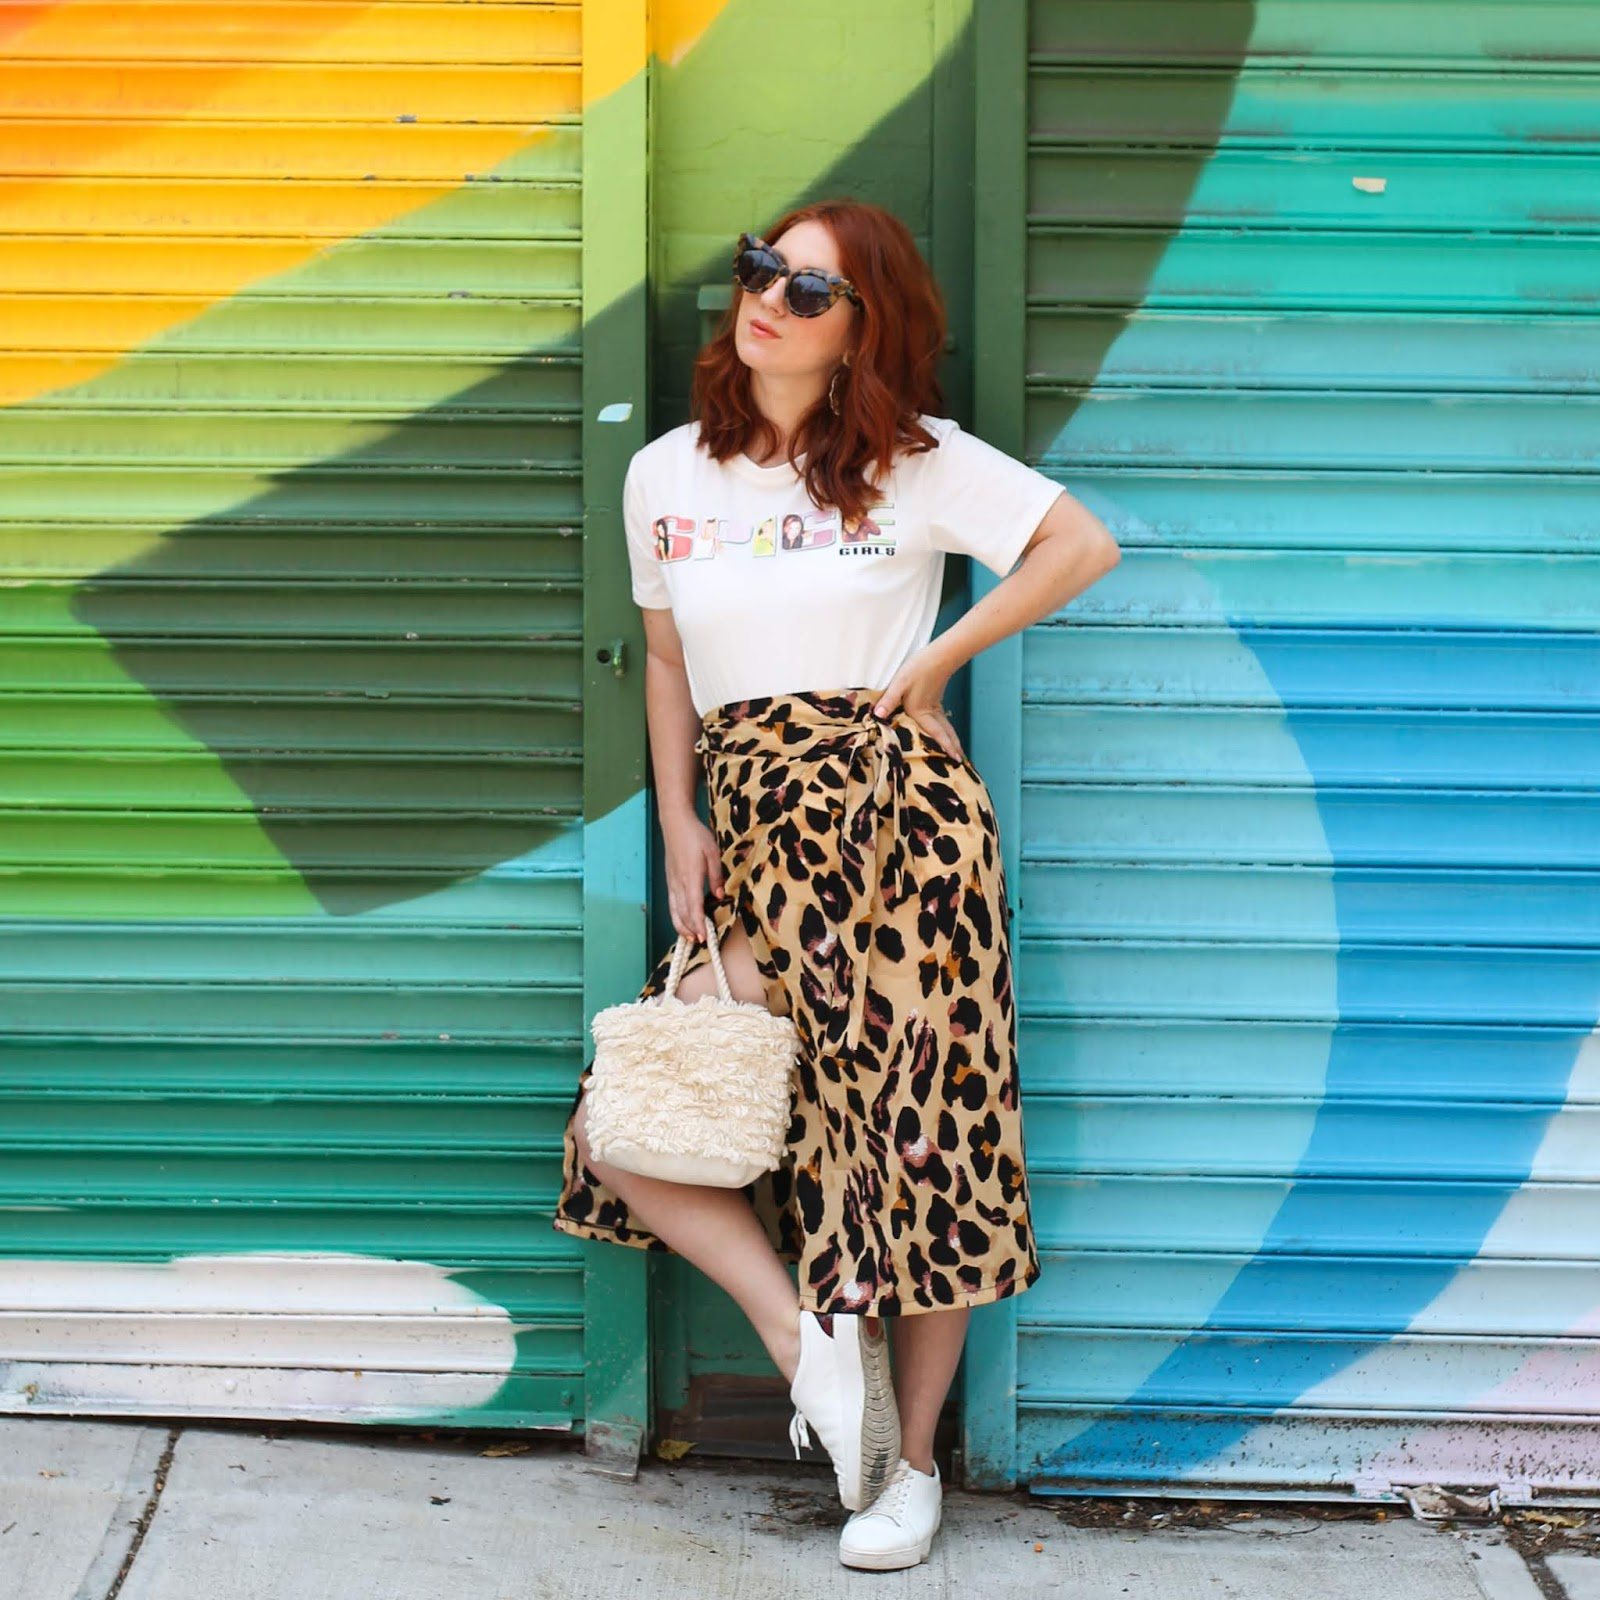 leopard wrap skirt, affordable leopard skirt, leopard skirt under $20, leopard fall outfit, leopard wrap skirt outfit, leopard wrap skirt under $25, amazon finds, leopard print outfits, budget friendly leopard outfit